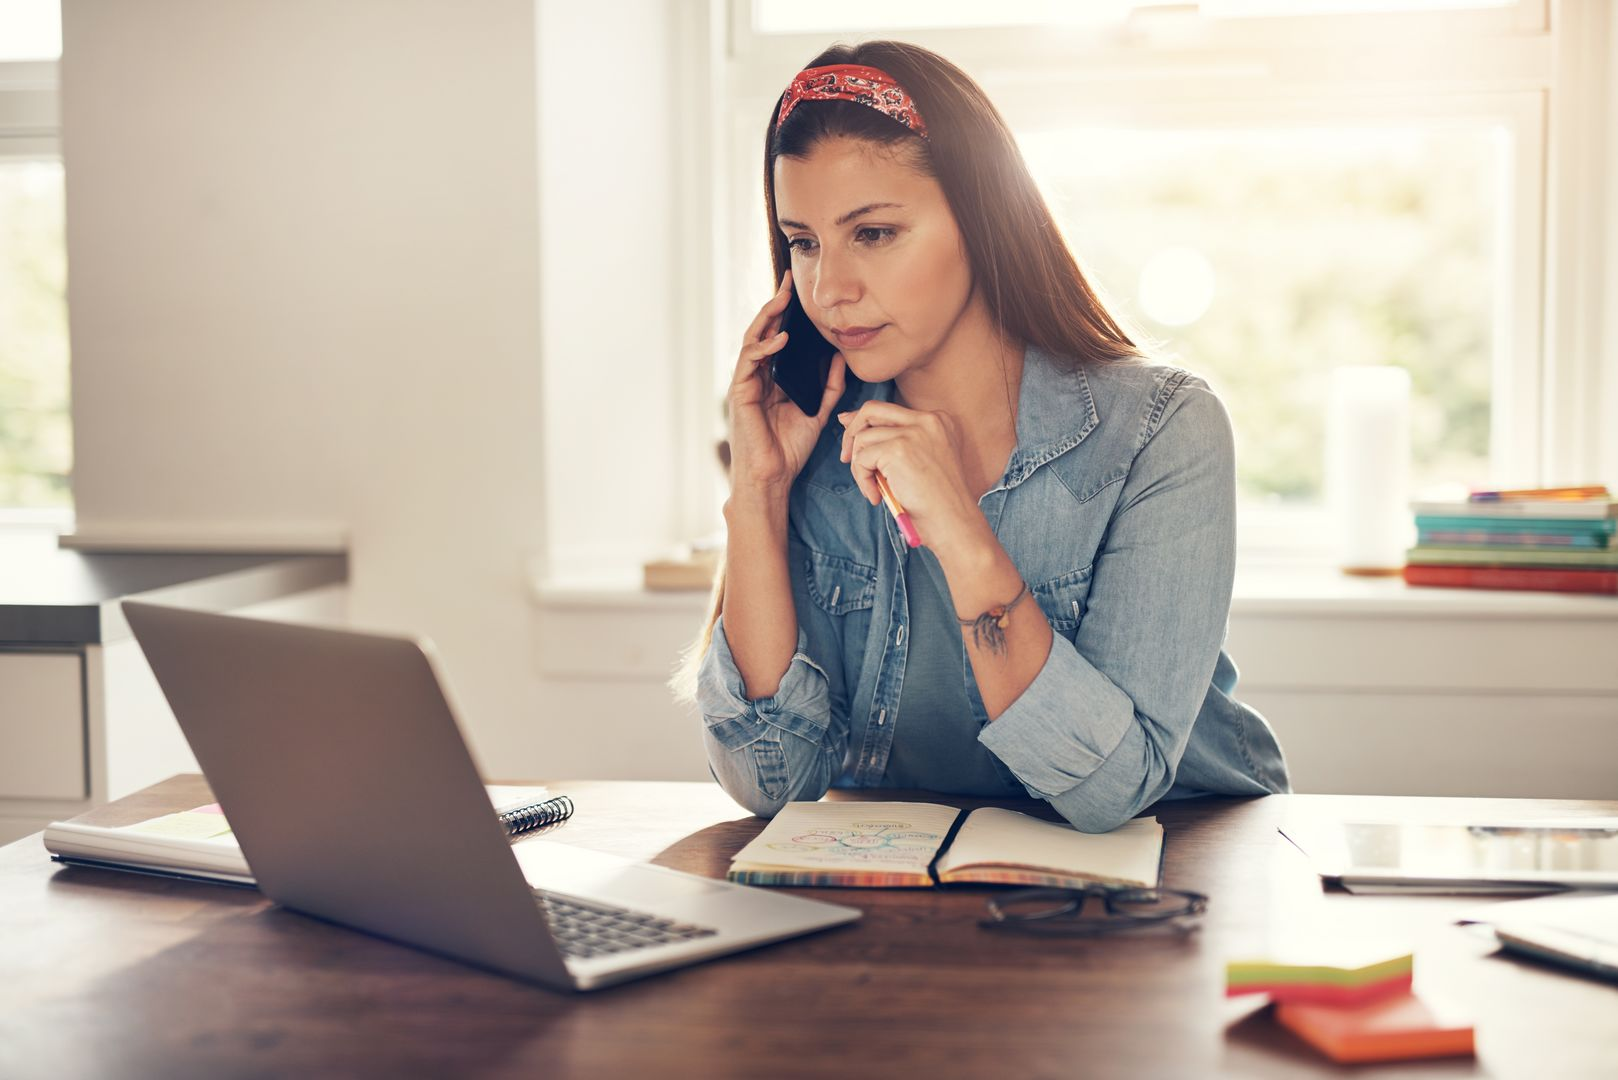 Young female entrepreneur communicating with smartphone while looking at laptop in office.